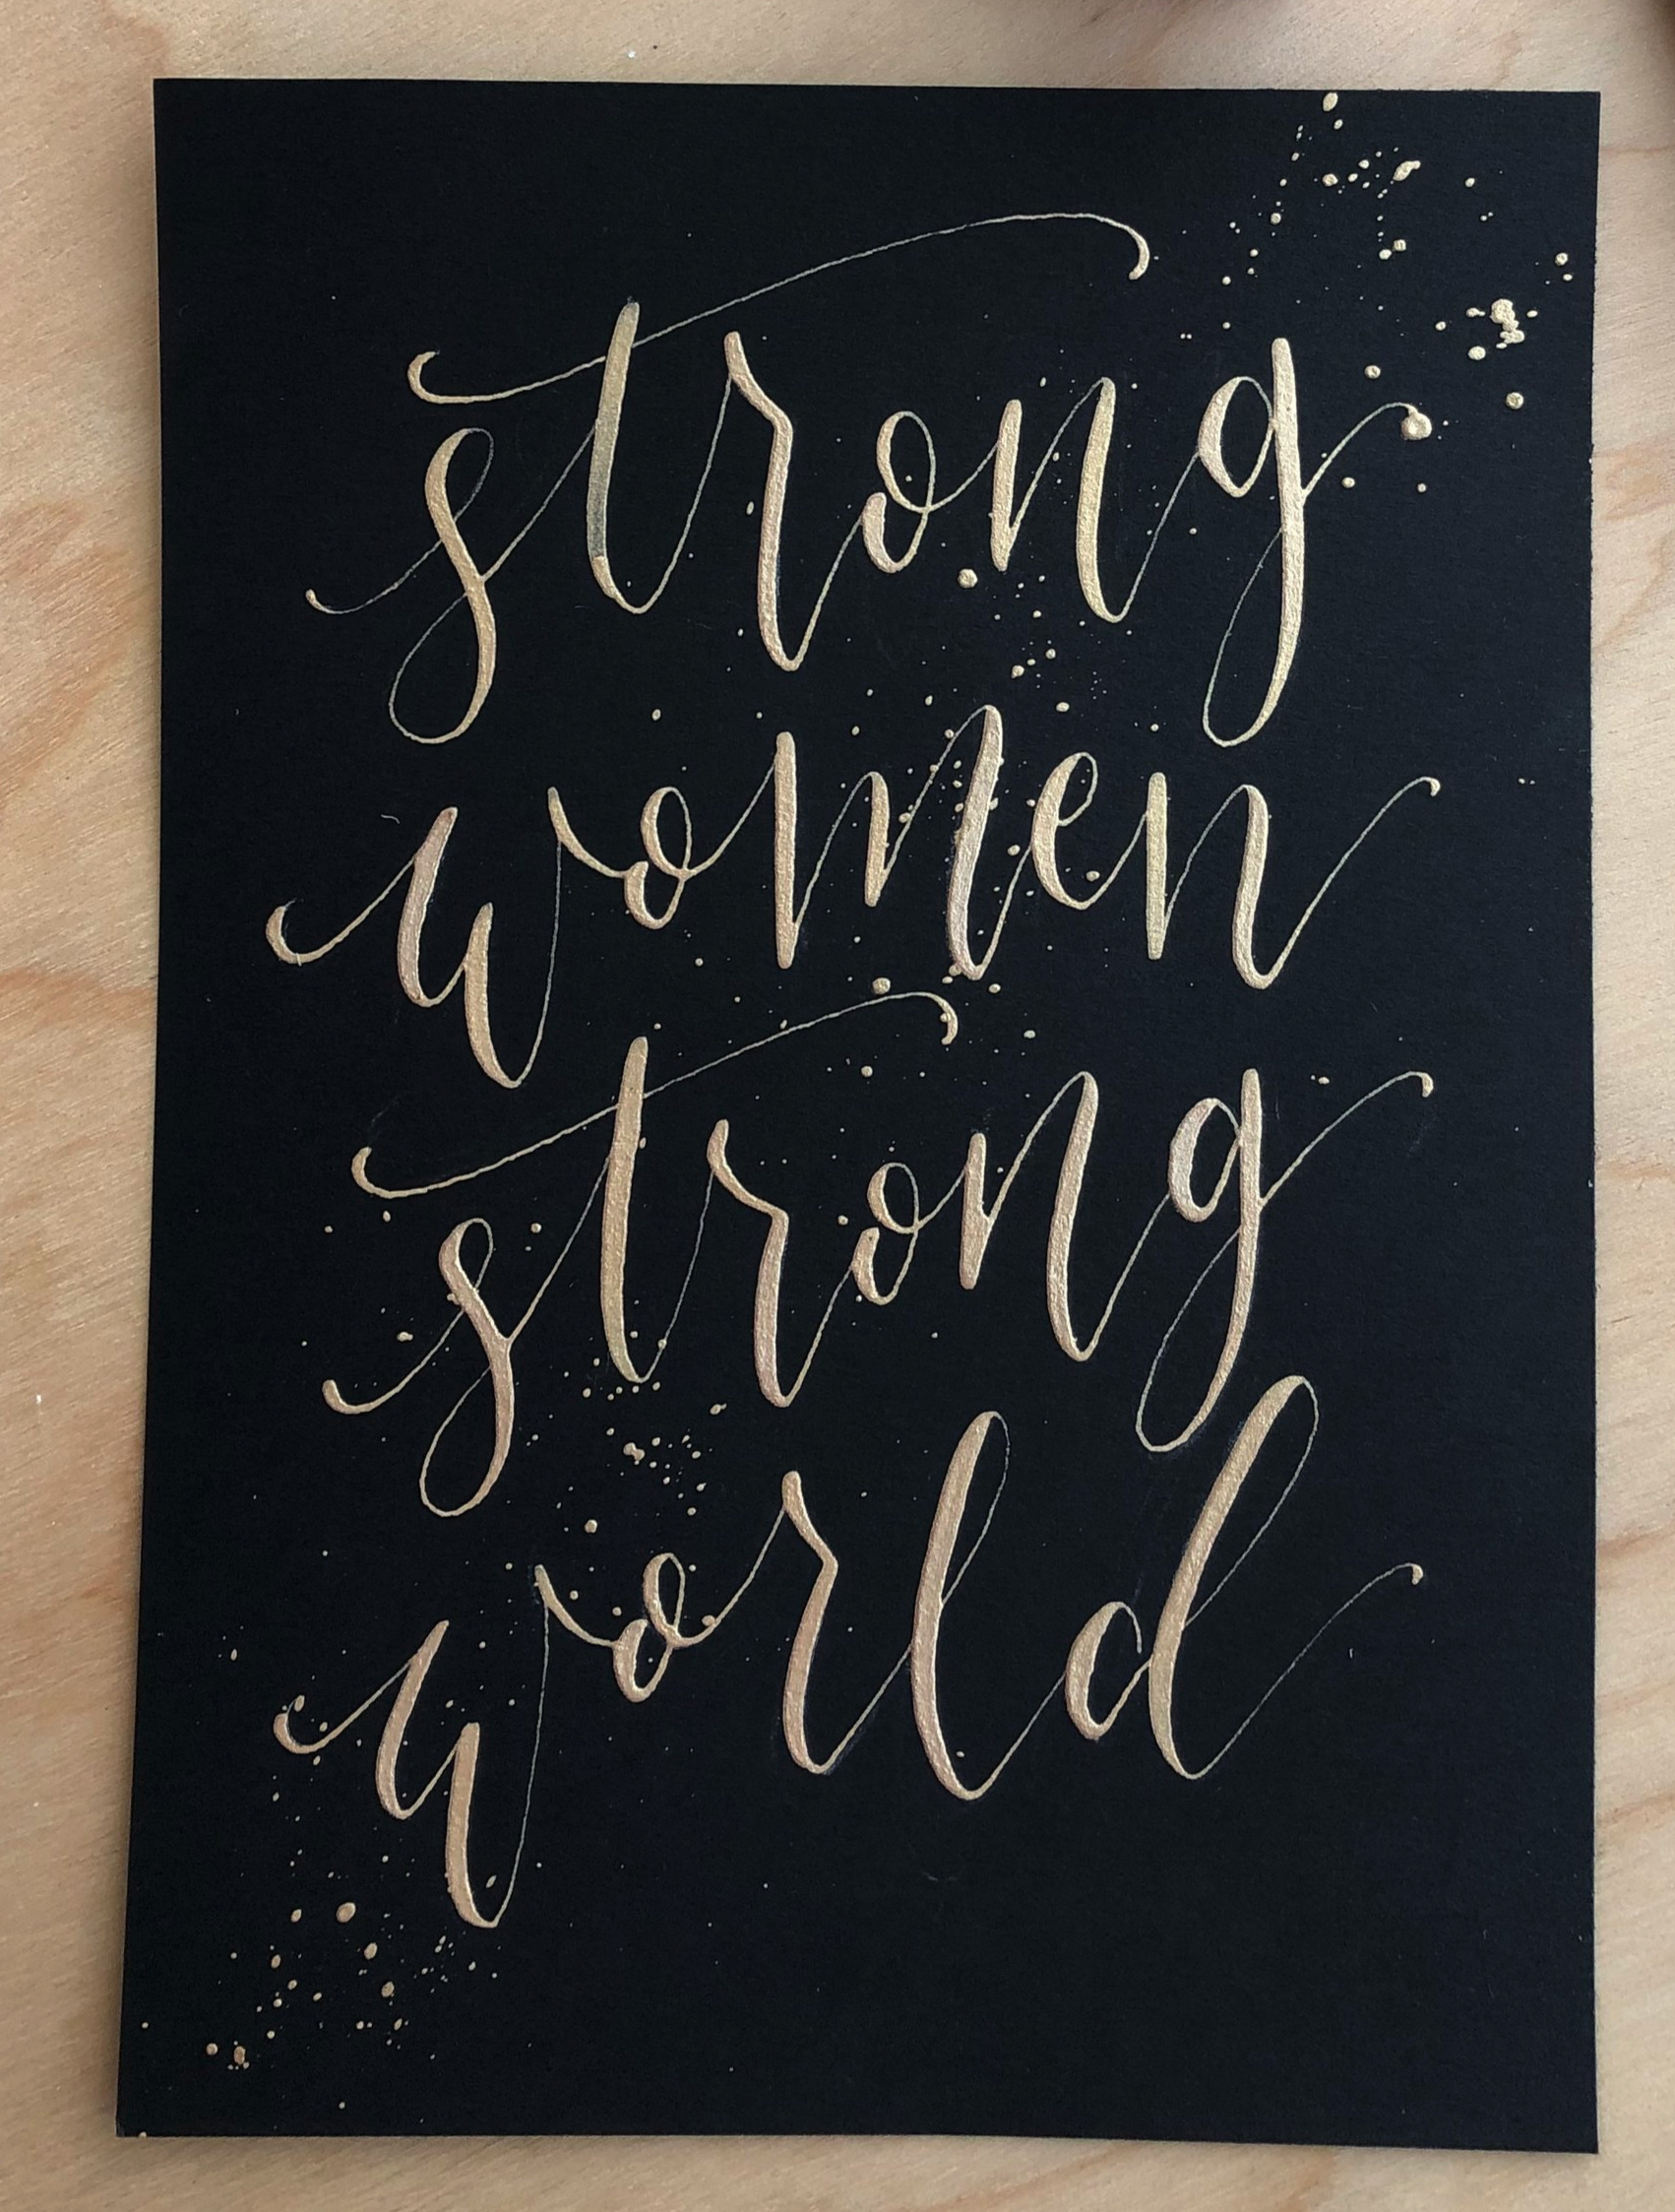 Calligraphy+with+ink+splatters